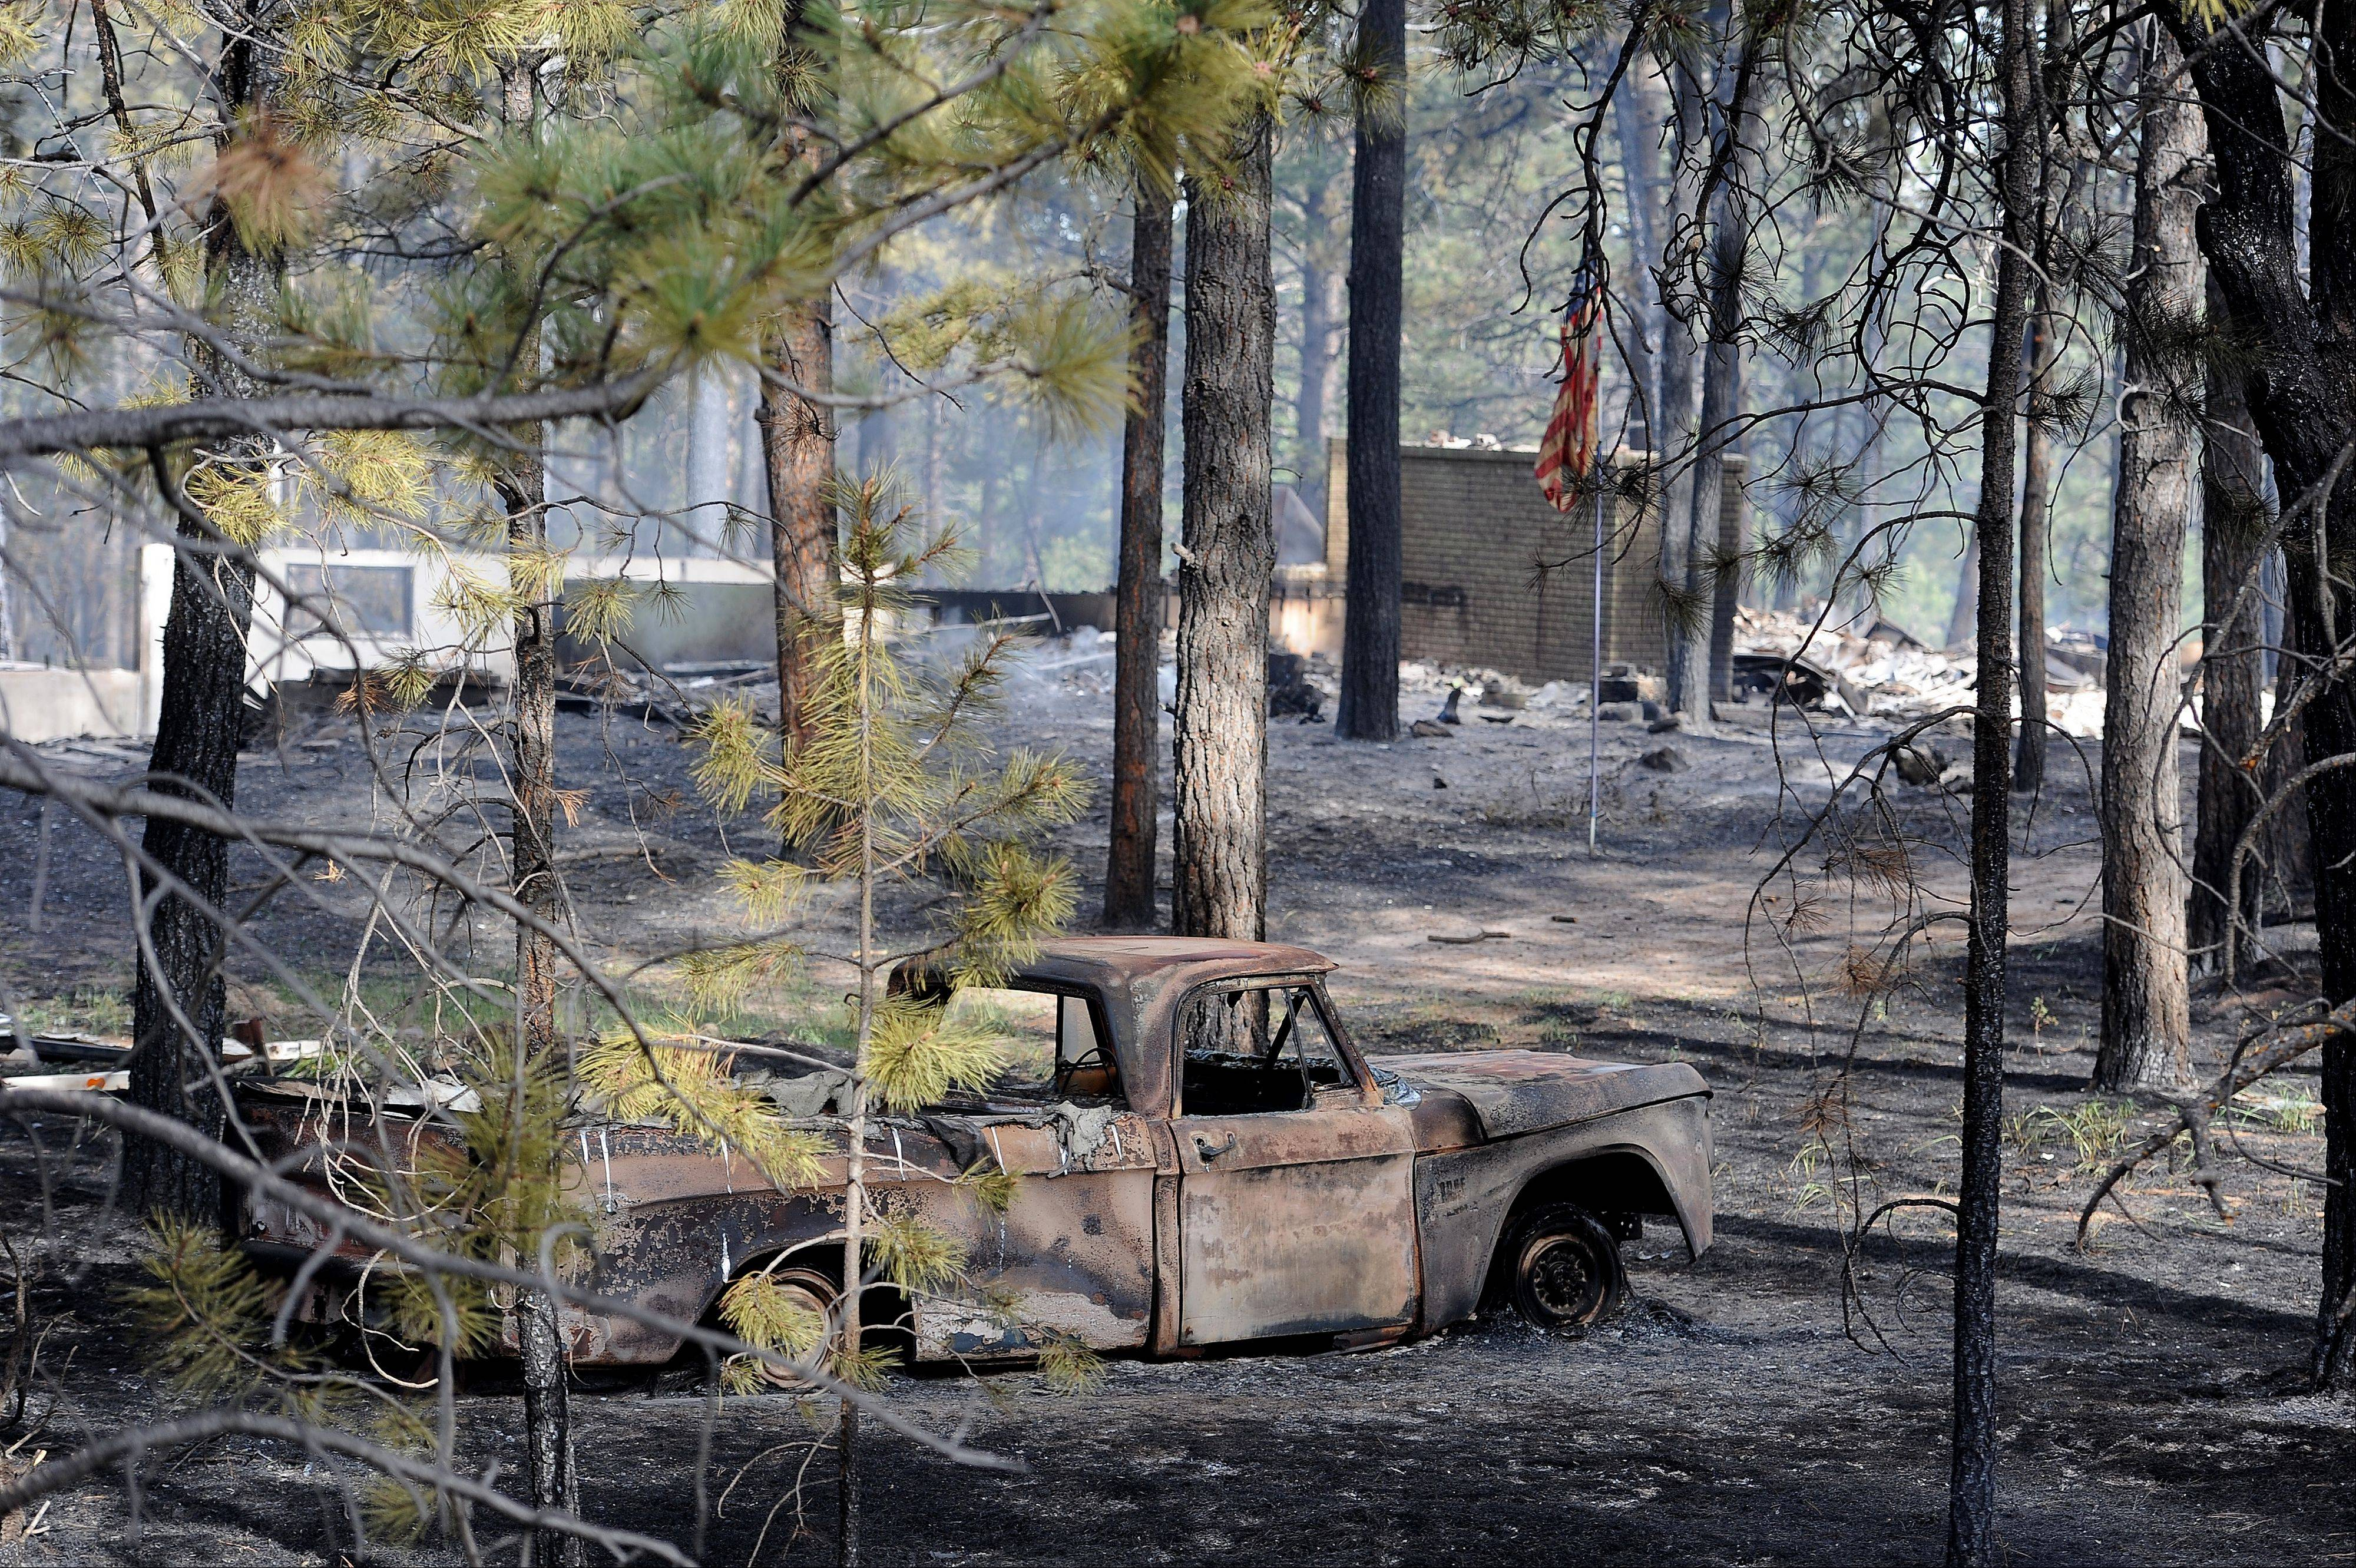 Blackened and charred homes are left along Herring Road in the Black Forest area northeast of Colorado Springs, Colo., on Wednesday, June 12, 2013. The Black Forest Fire northeast of Colorado Springs earlier prompted evacuation orders and pre-evacuation notices to more than 9,000 people and to about 3,500 homes and businesses, sheriff�s officials said. The fire has destroyed more than 360 homes.